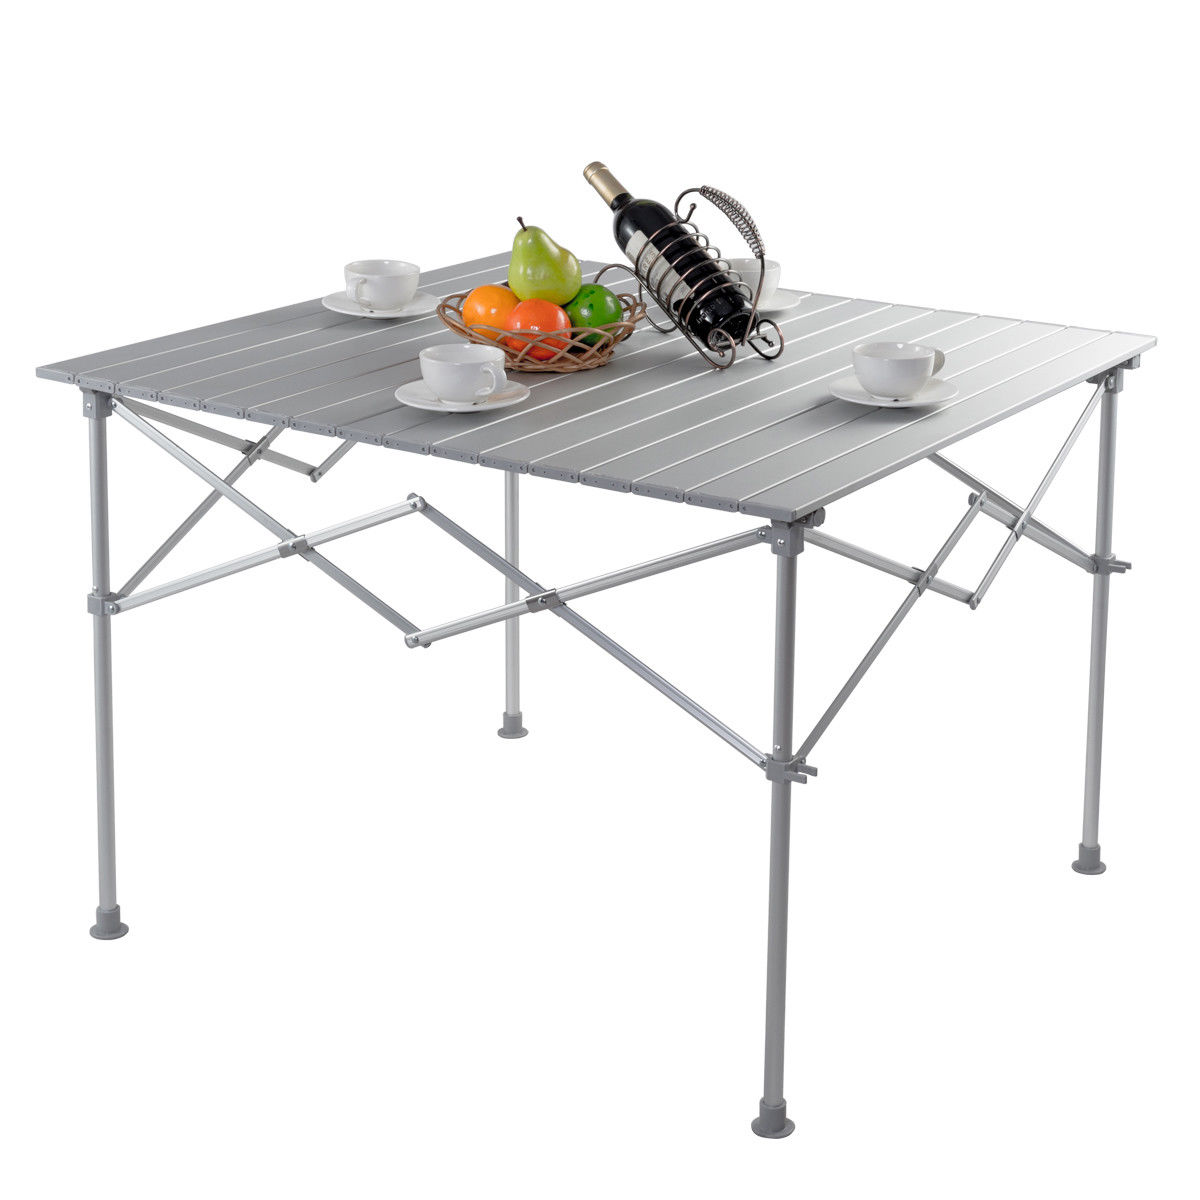 Click here to buy Gymax Aluminum Folding Picnic Camping Table Lightweight Roll-Up In Outdoor Storage Bag by Gymax.